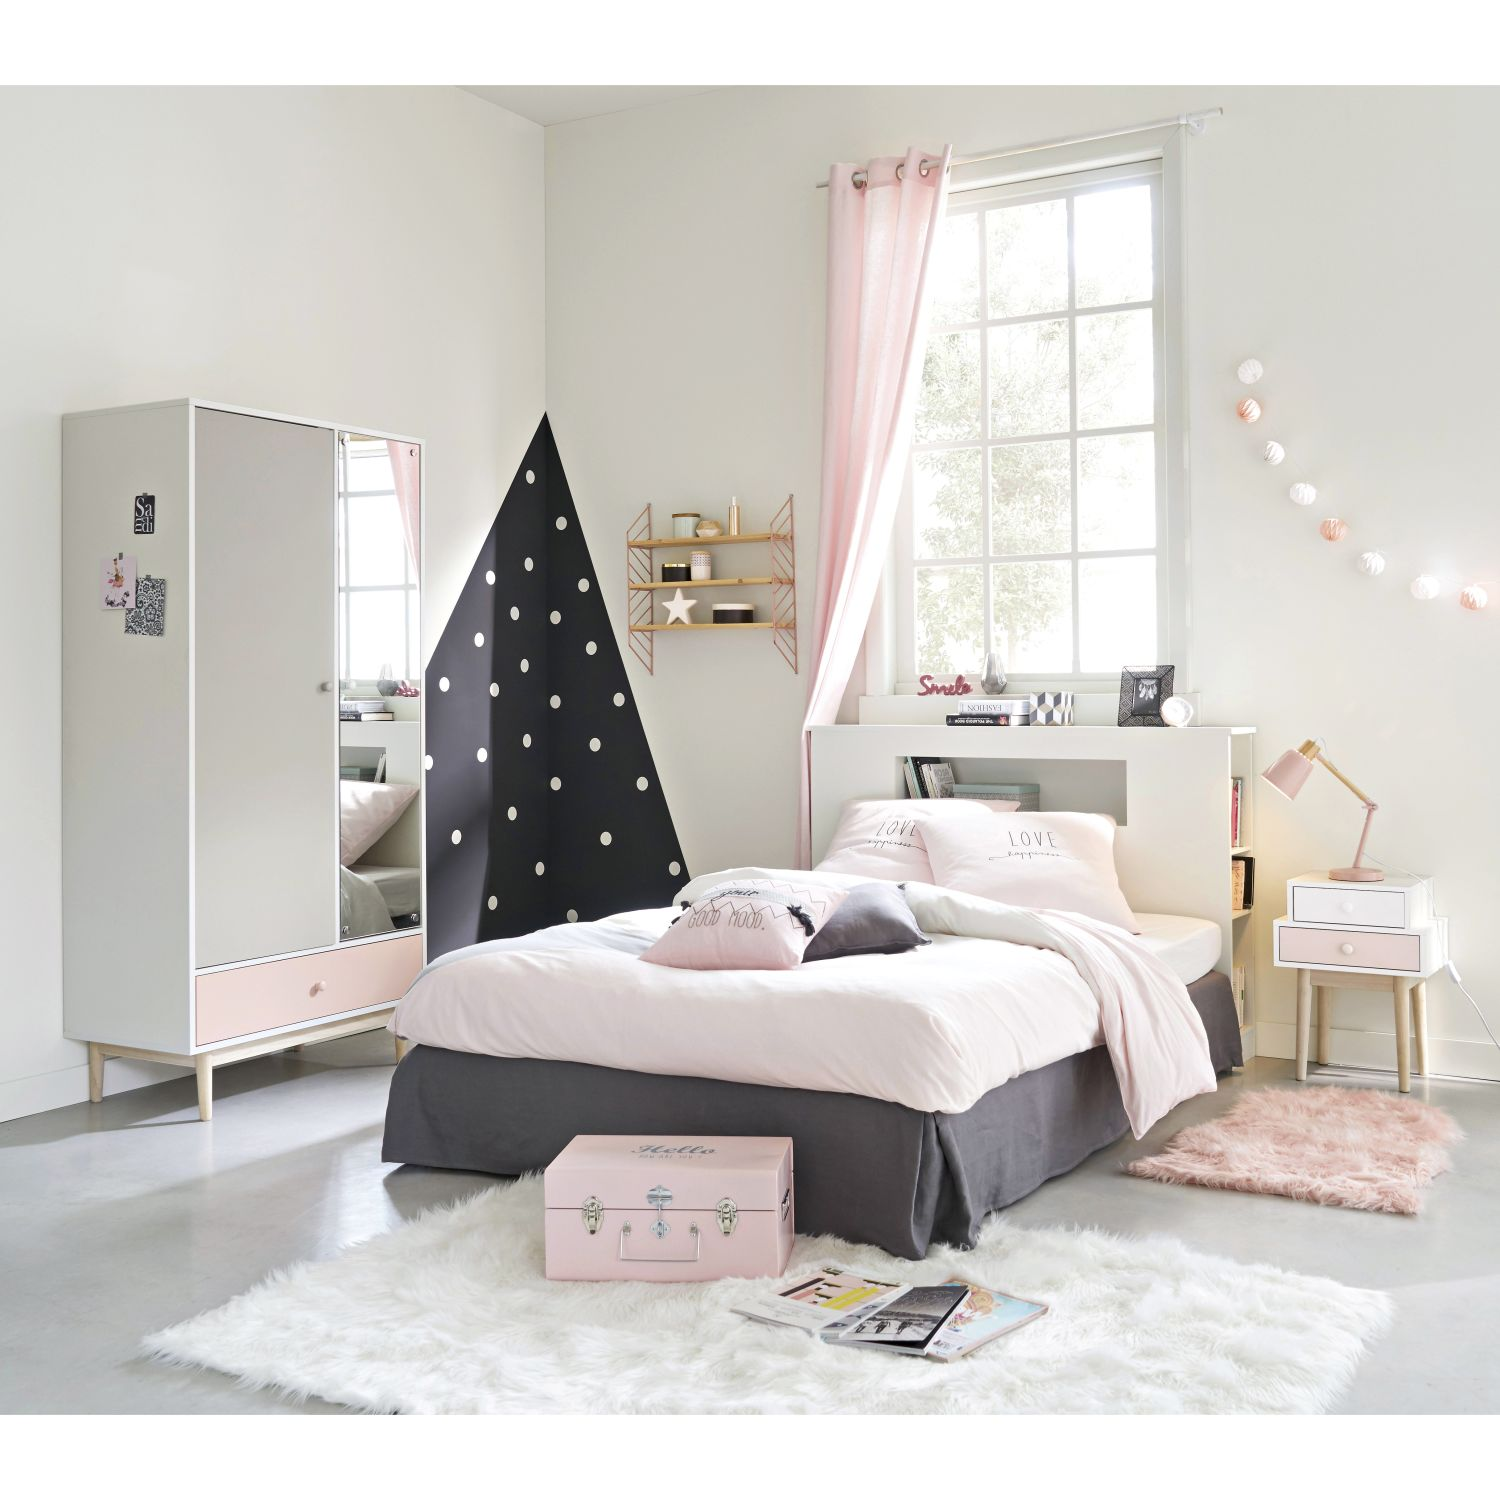 parure de lit en coton gris et rose 140x200 maisons du monde. Black Bedroom Furniture Sets. Home Design Ideas